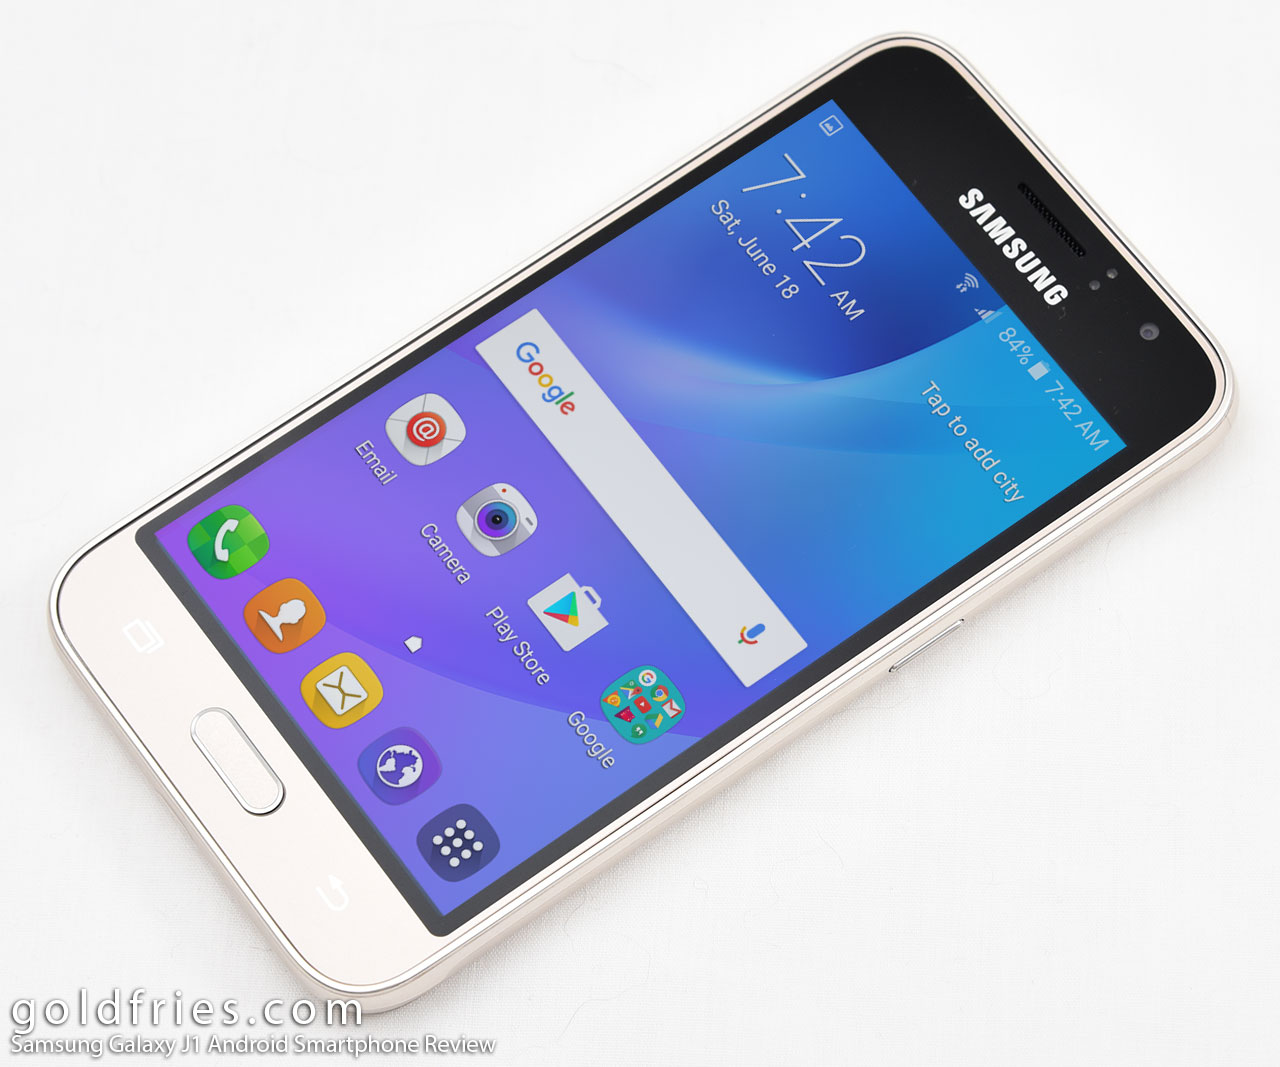 Samsung Galaxy J1 Android Smartphone Review